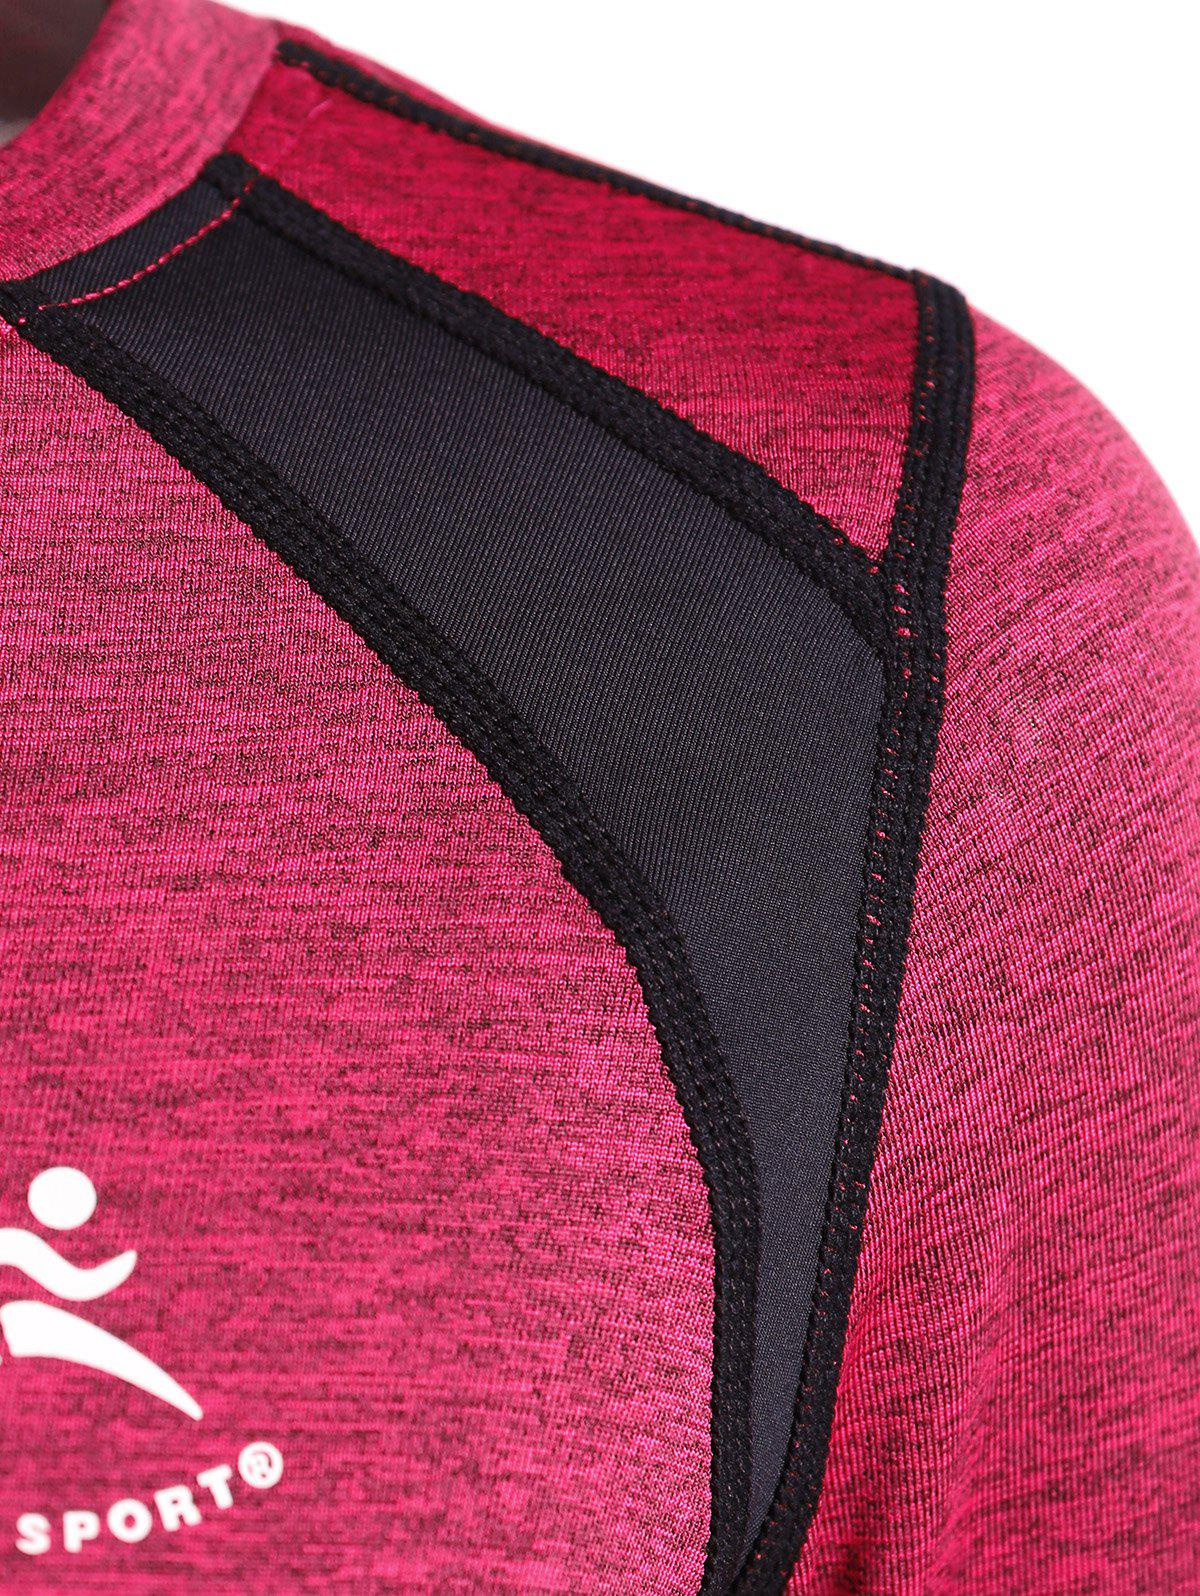 Color Block Heather Running T-Shirt - ROSE RED XL